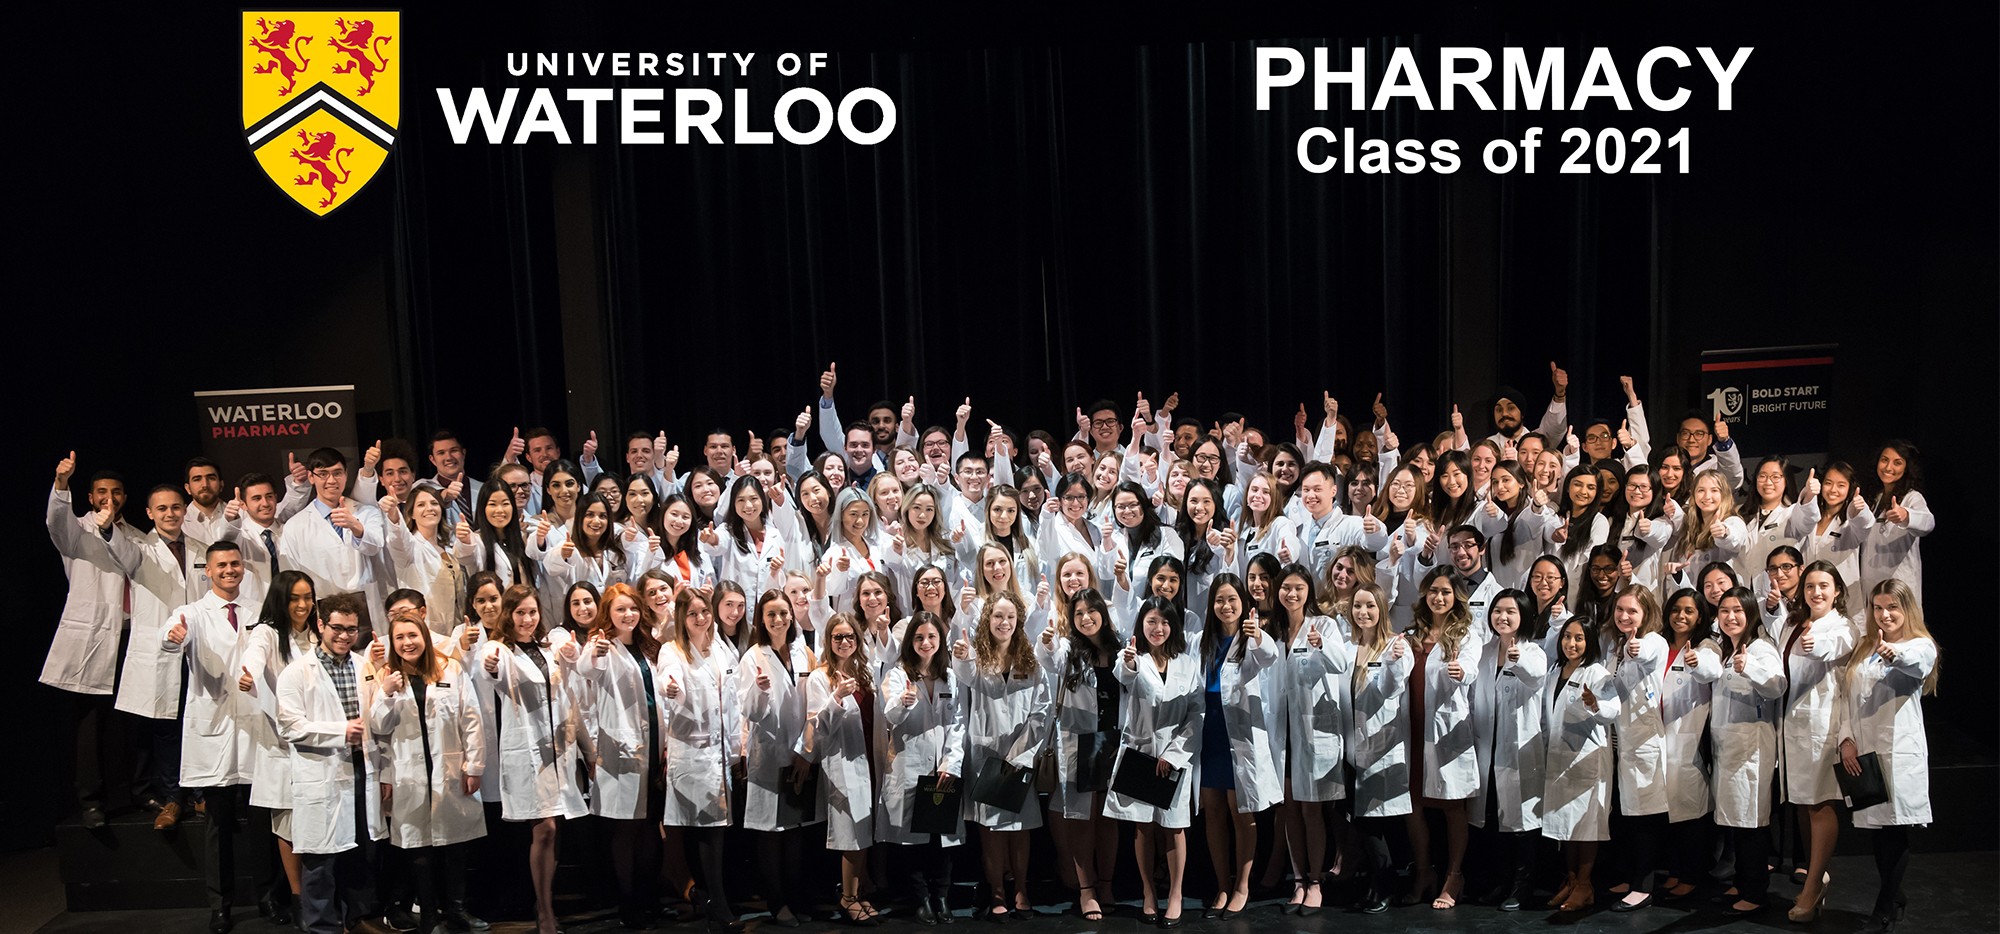 Rx2021 at their white coat ceremony smiling